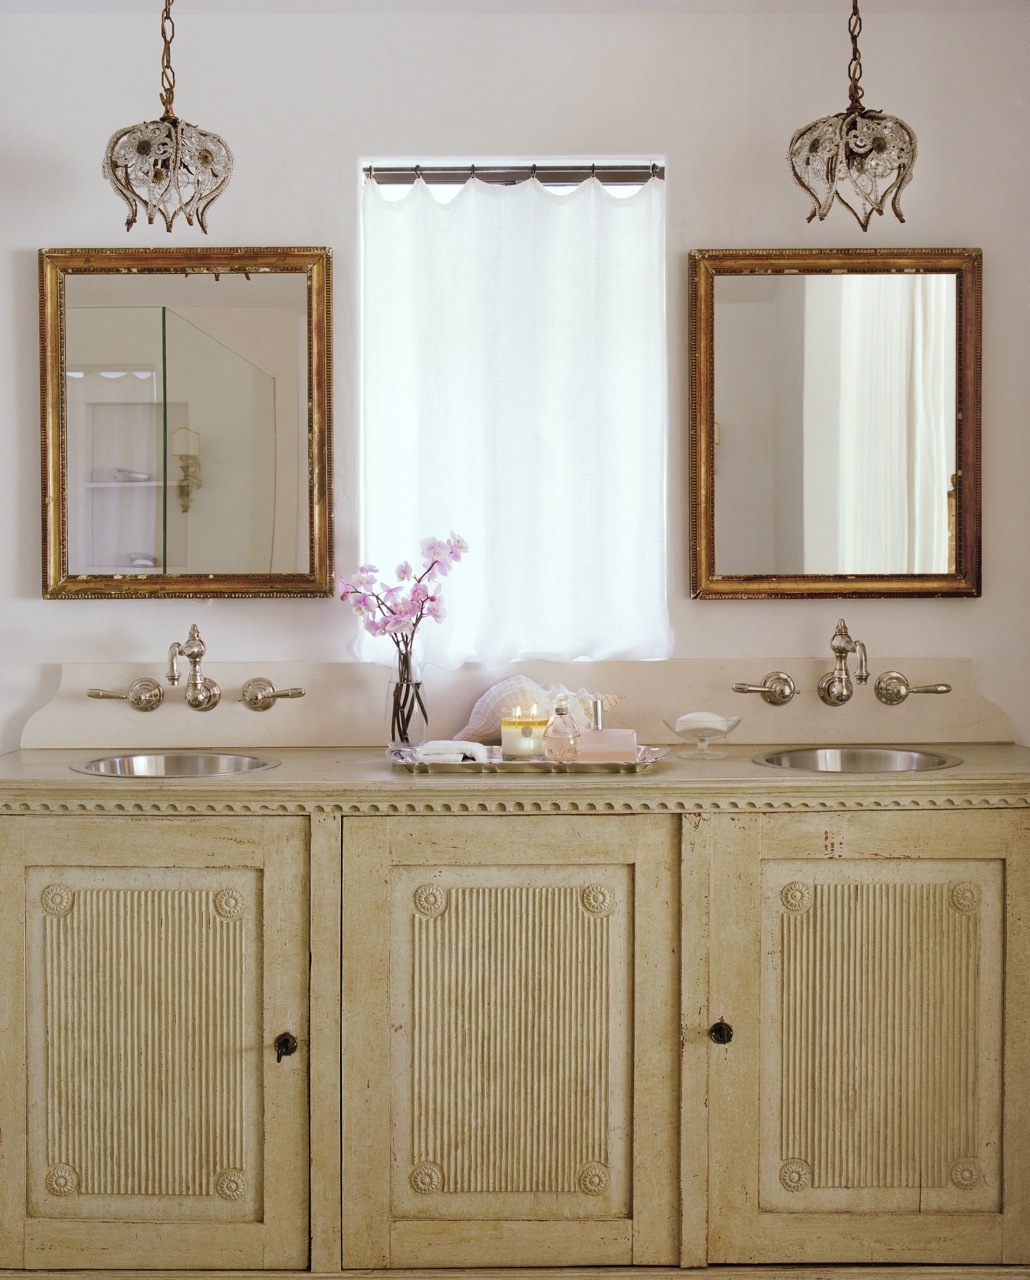 Hanging bathroom lights - Romerein_giannetti Oxnard_aa1 12_flat Lighting Options In The Bathroom Velvet